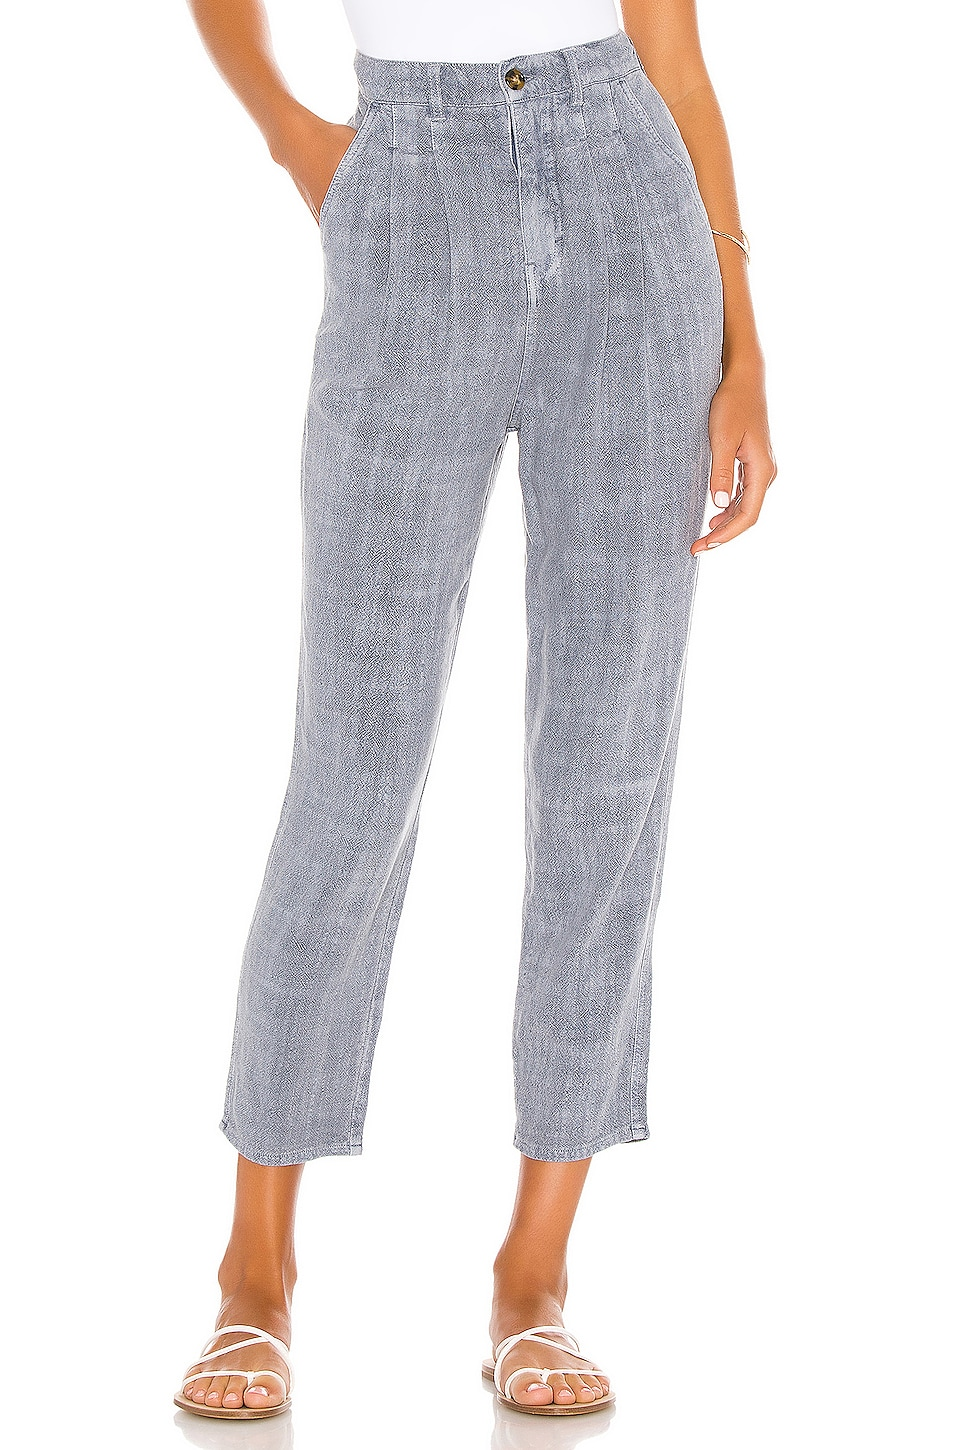 Faded Love Pant                     Free People 10